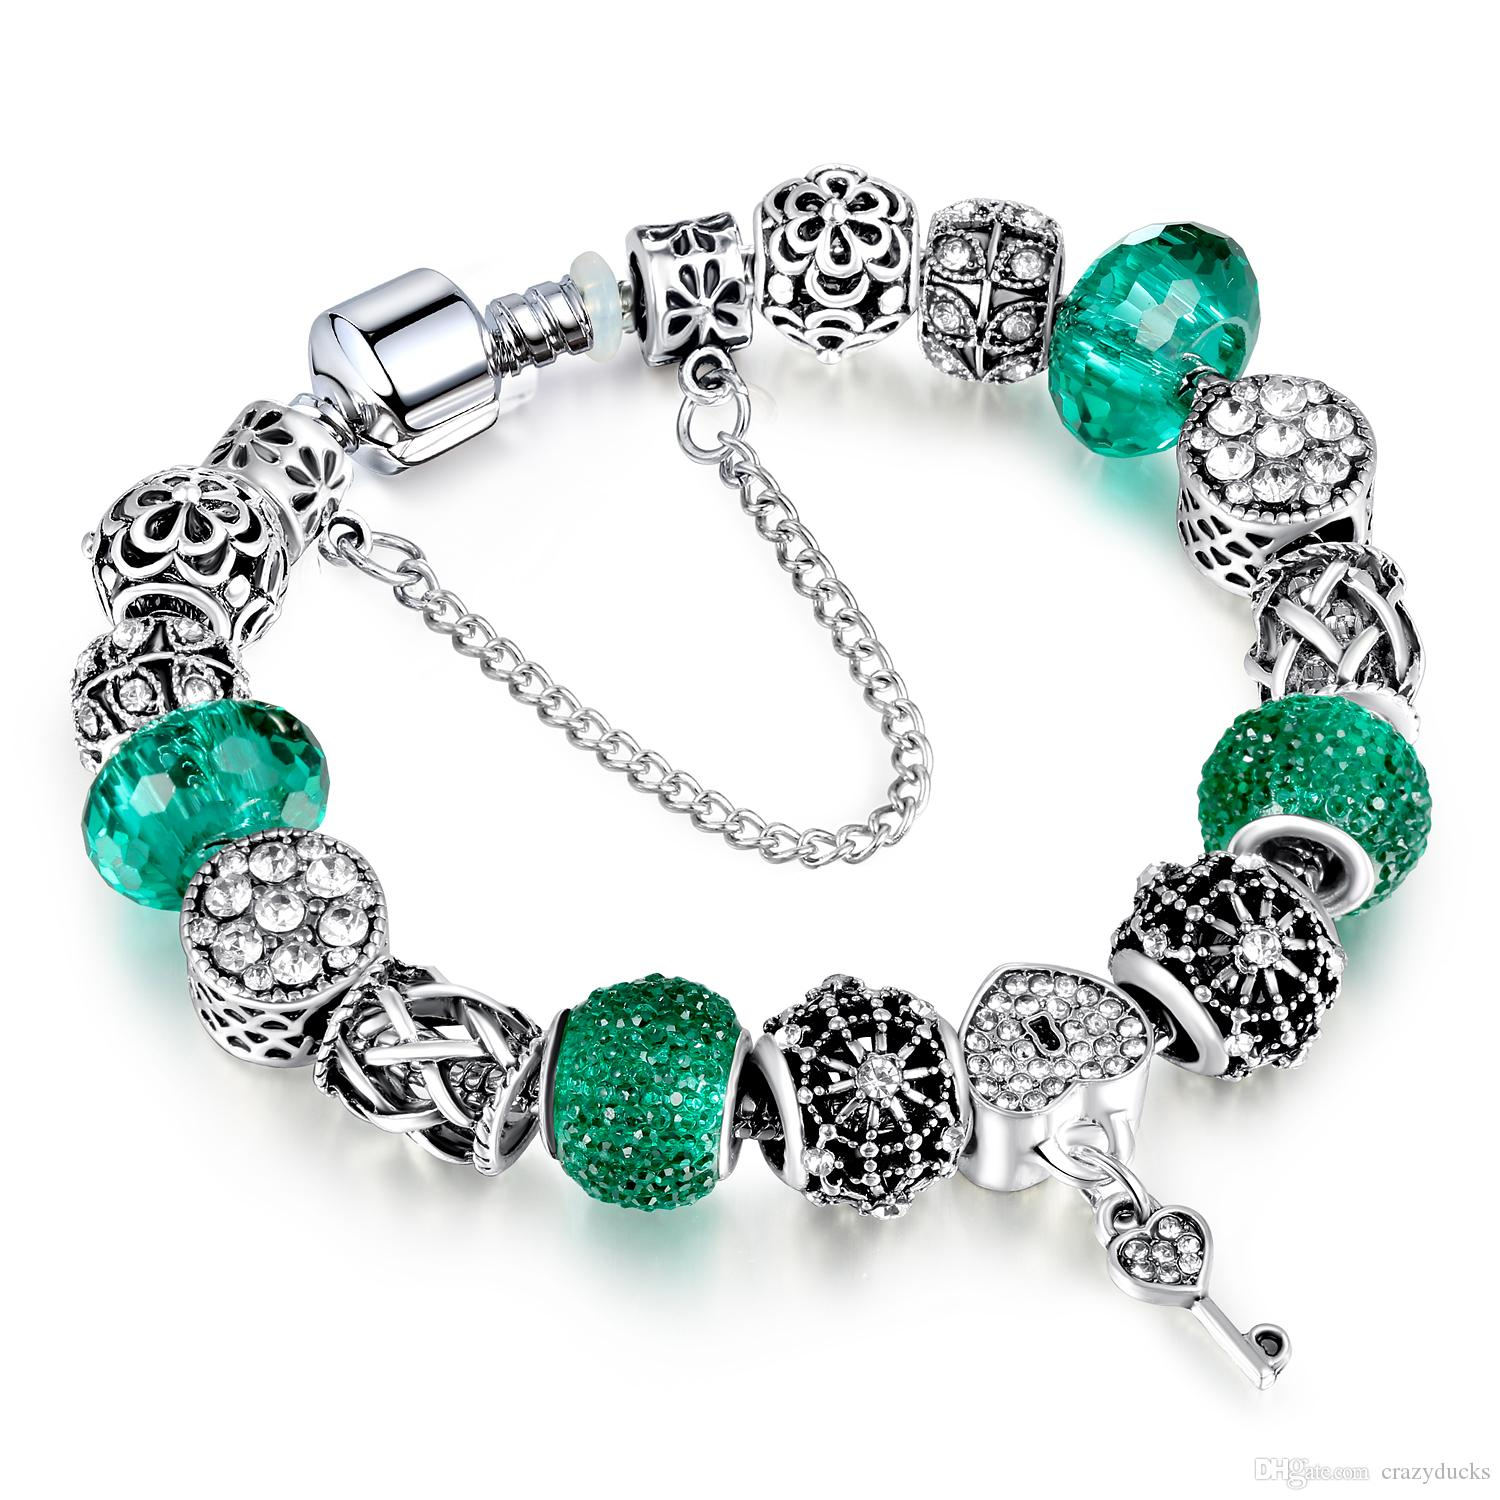 European Silver Bracelet Allow Silver Plated Bead With Green Crystal Charm Bracelet With Luxury Glass Beads for Women Jewelry AA114